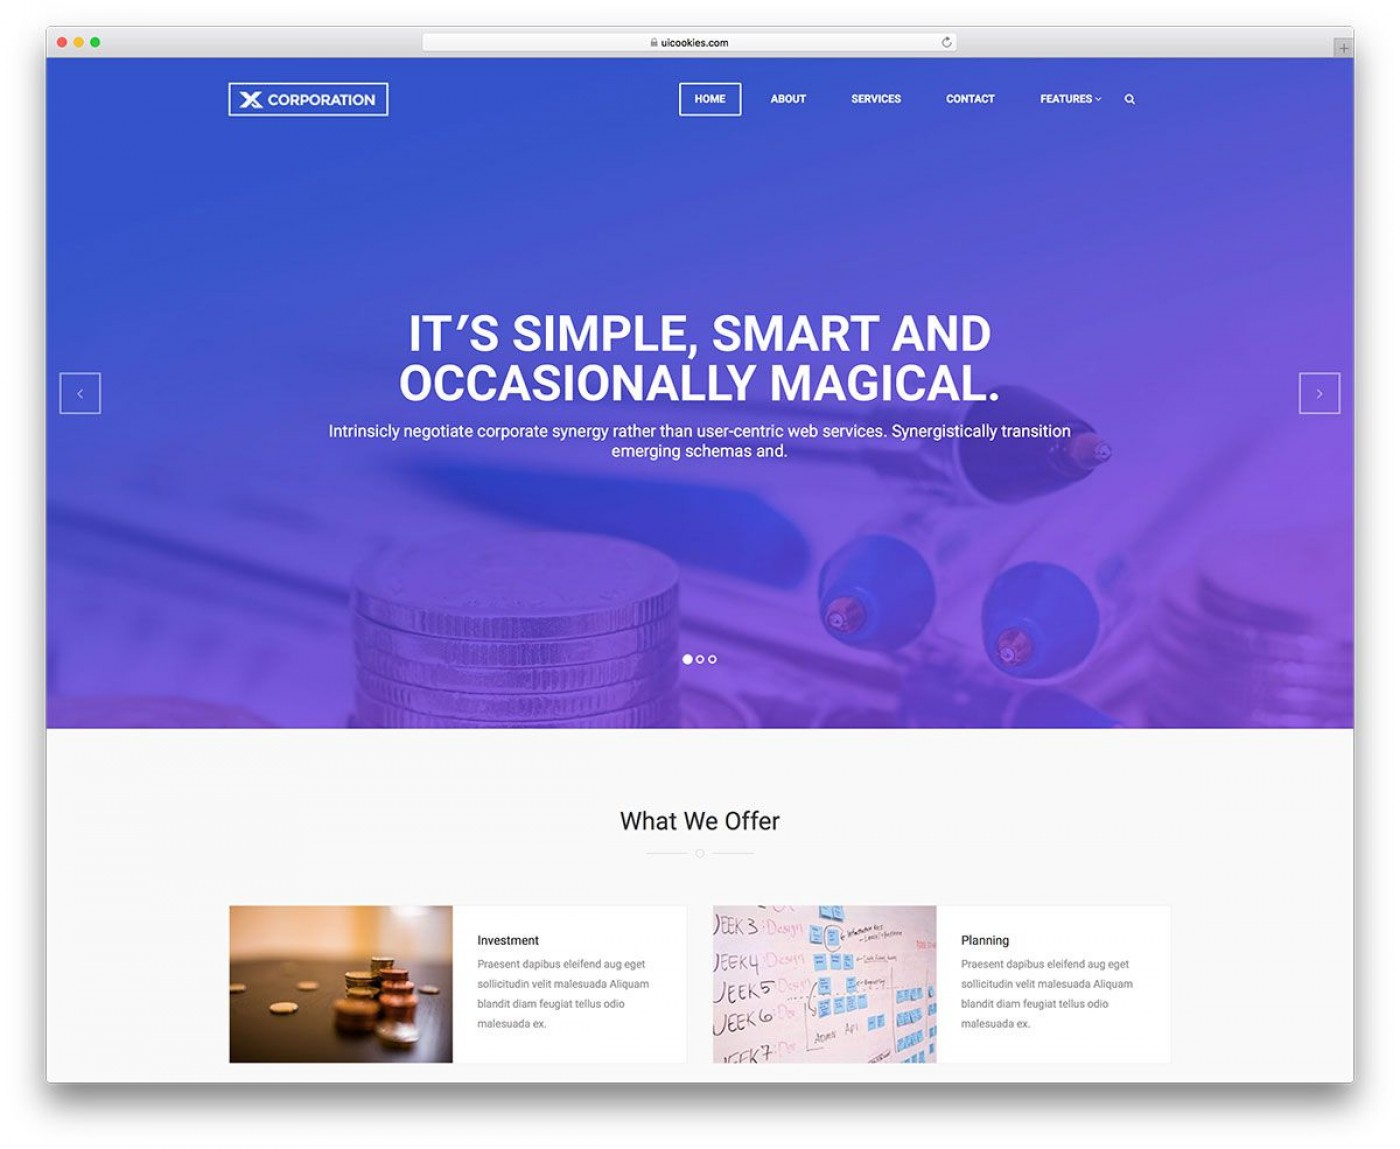 000 Unbelievable Simple Web Page Template Image  Html Website Free Download In Design Using And Cs1400